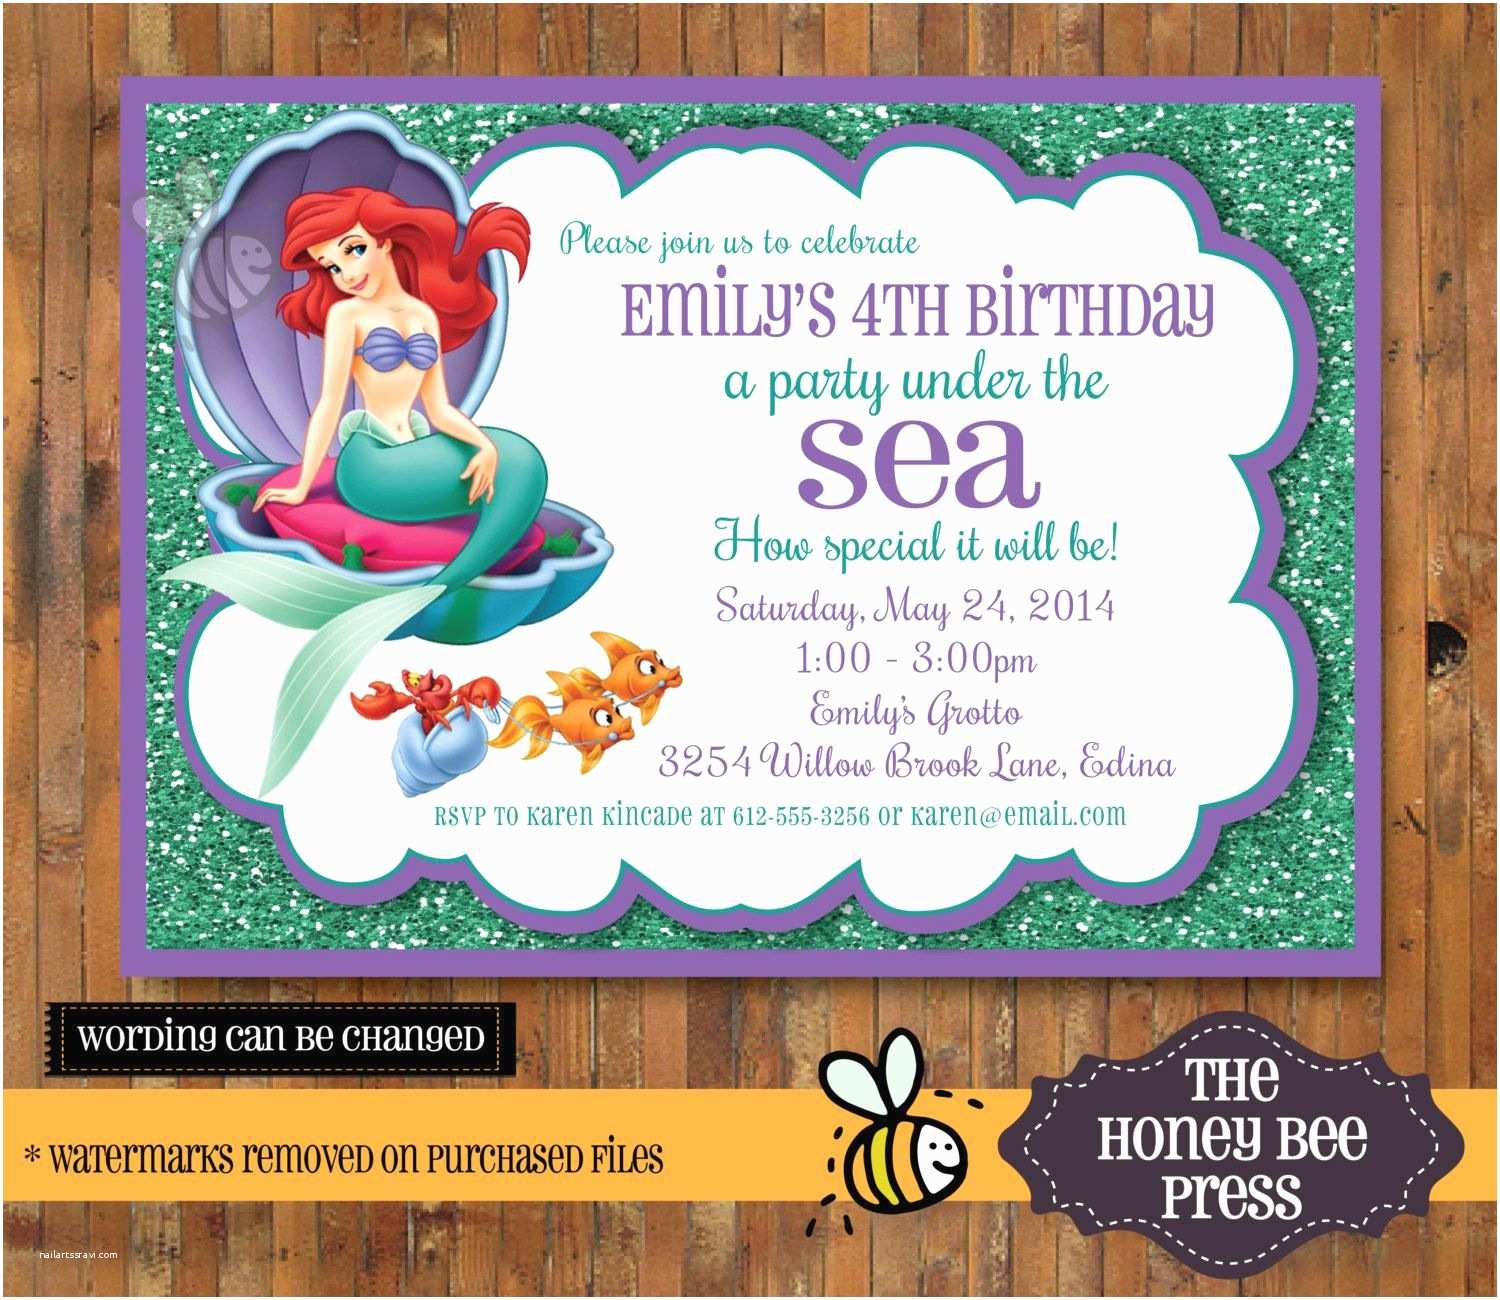 Little Mermaid Party Invitations Under the Sea Invitation Little Mermaid Under the Sea